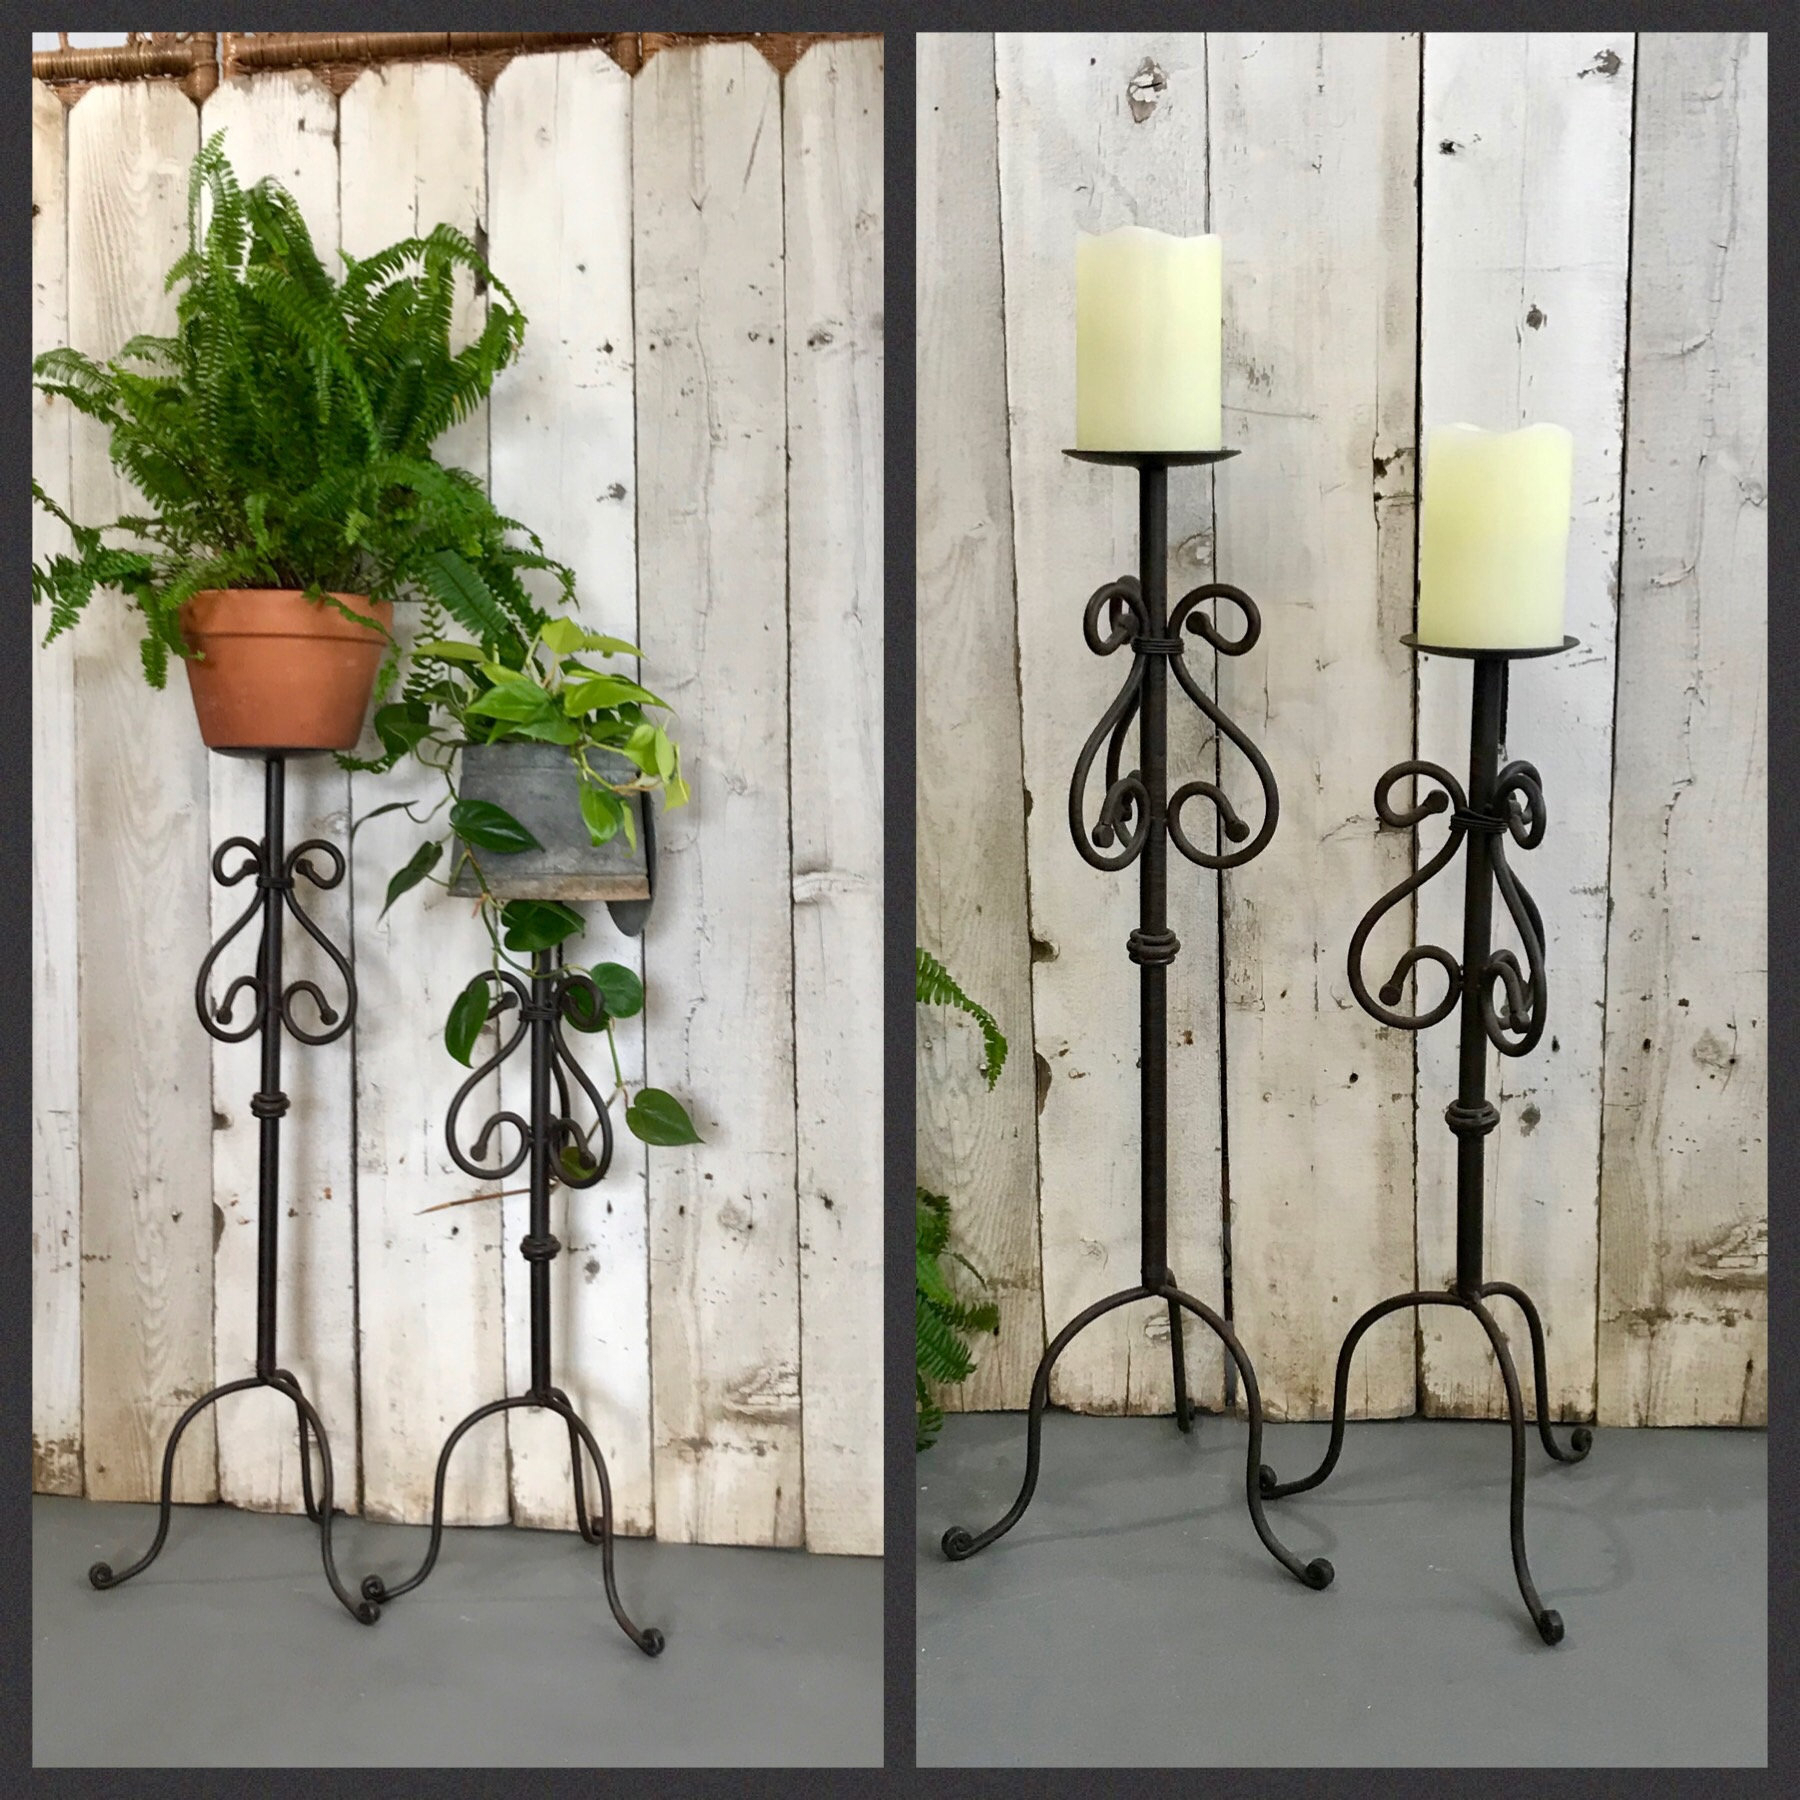 Tall Wrought Iron Pillar Candle Holder Set Of 2, 32X12 And 27X12, Tall  Metal Floor Candle Stands, Iron Plant Stand Set, Metal Plant Holders intended for Wrought Iron Calendar Holder